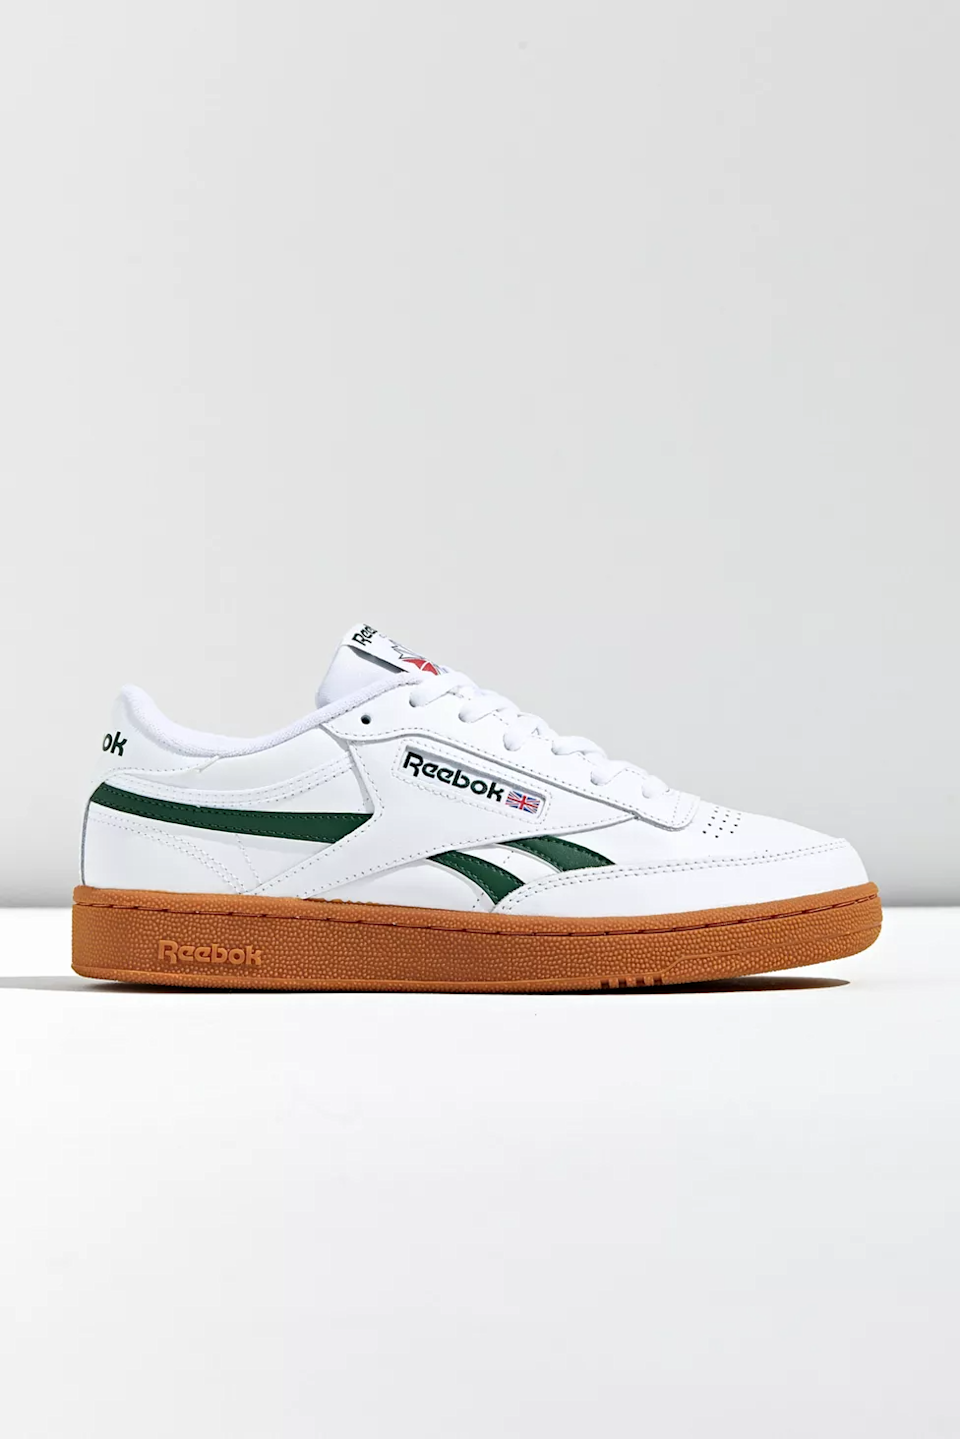 """<br><br><strong>Reebok</strong> Club C Revenge Sneaker, $, available at <a href=""""https://go.skimresources.com/?id=30283X879131&url=https%3A%2F%2Fwww.urbanoutfitters.com%2Fshop%2Freebok-club-c-revenge-sneaker6%3Fcolor%3D010%26type%3DREGULAR%26quantity%3D1"""" rel=""""nofollow noopener"""" target=""""_blank"""" data-ylk=""""slk:Urban Outfitters"""" class=""""link rapid-noclick-resp"""">Urban Outfitters</a>"""